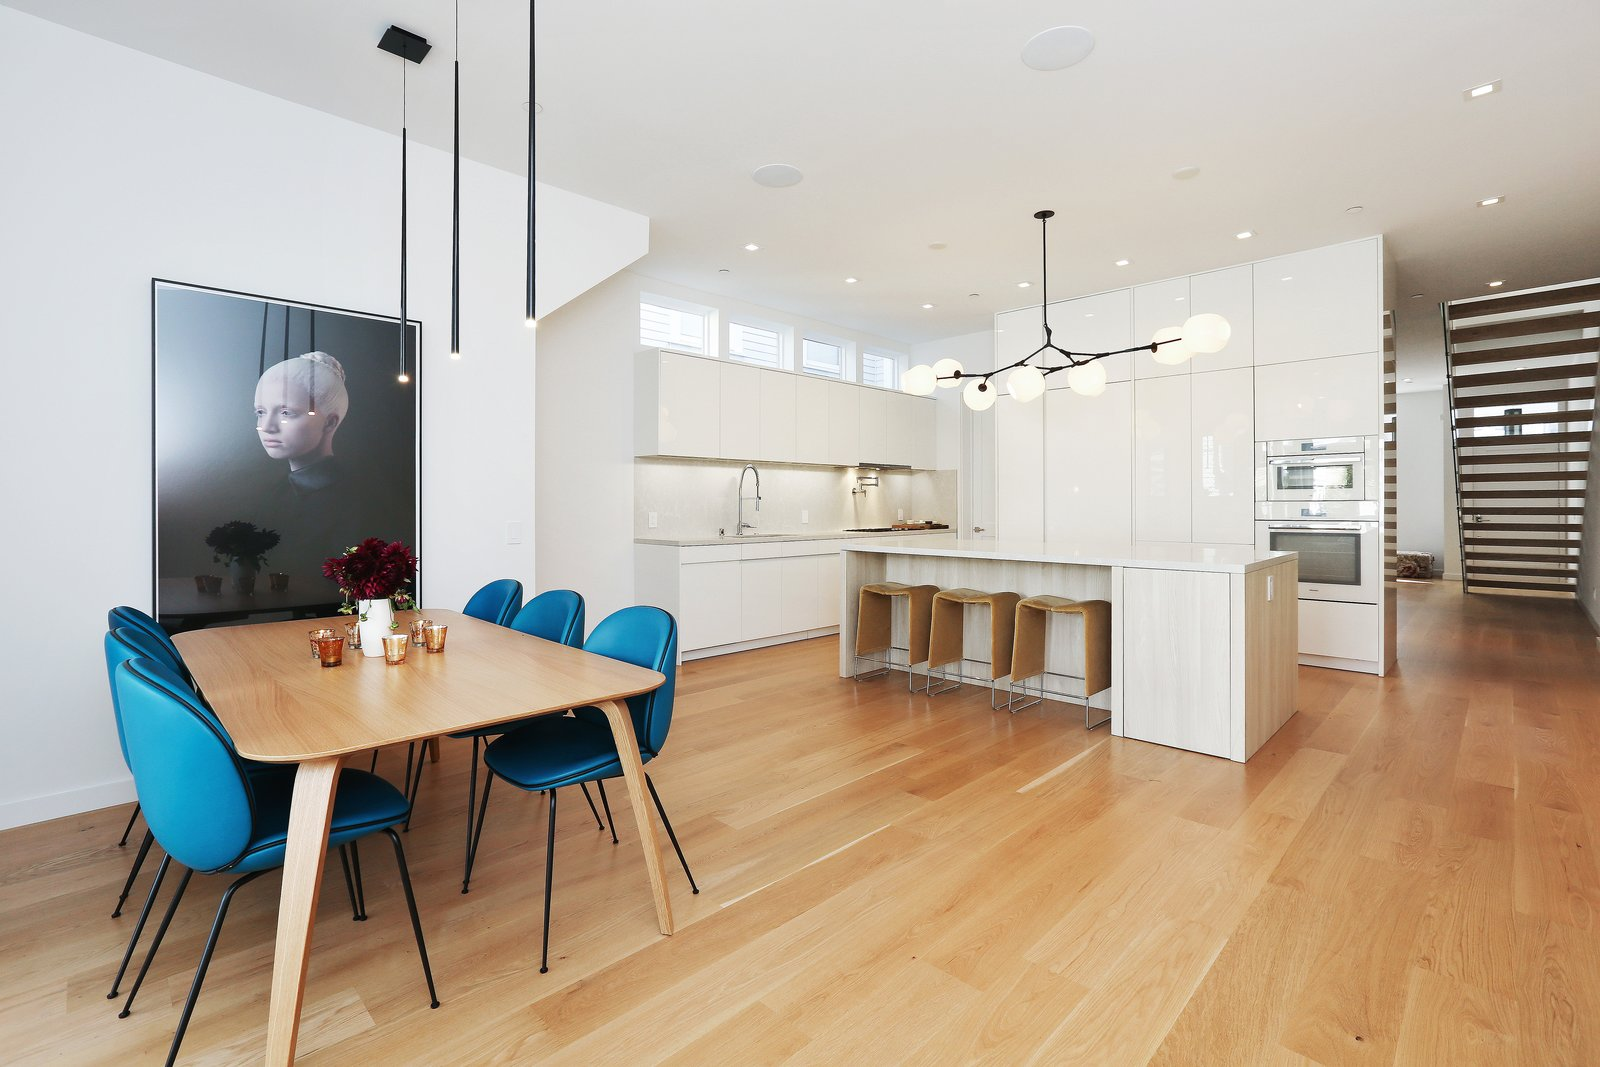 dining room/kitchen  Lower Pacific Heights by patrick perez/designpad architecture